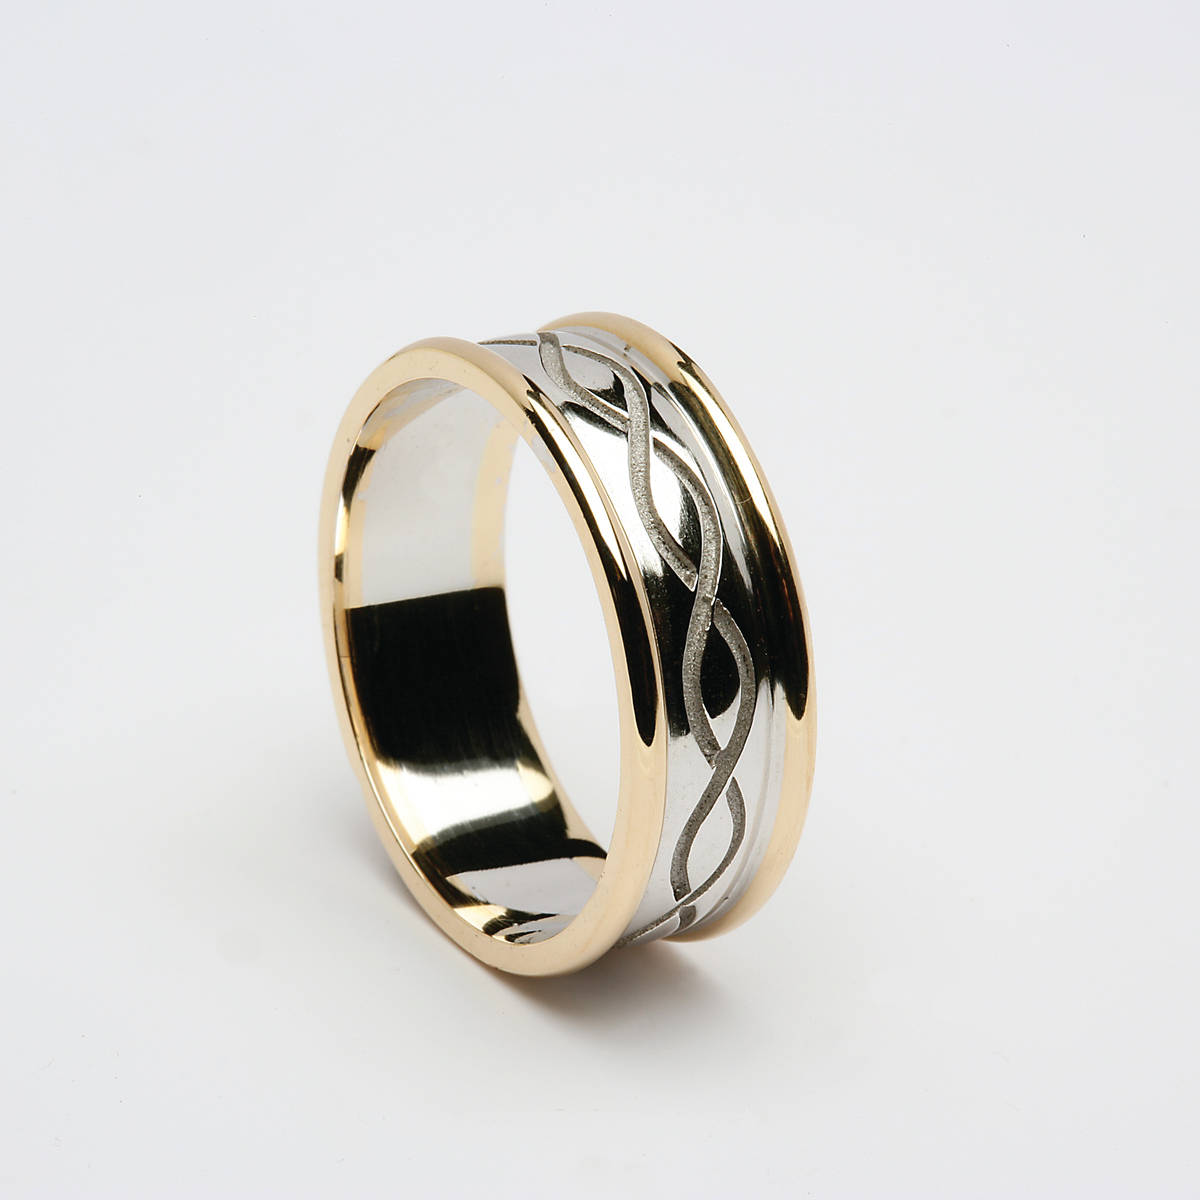 14 carat white gold man's  two lines entwined ring with yellow gold rims